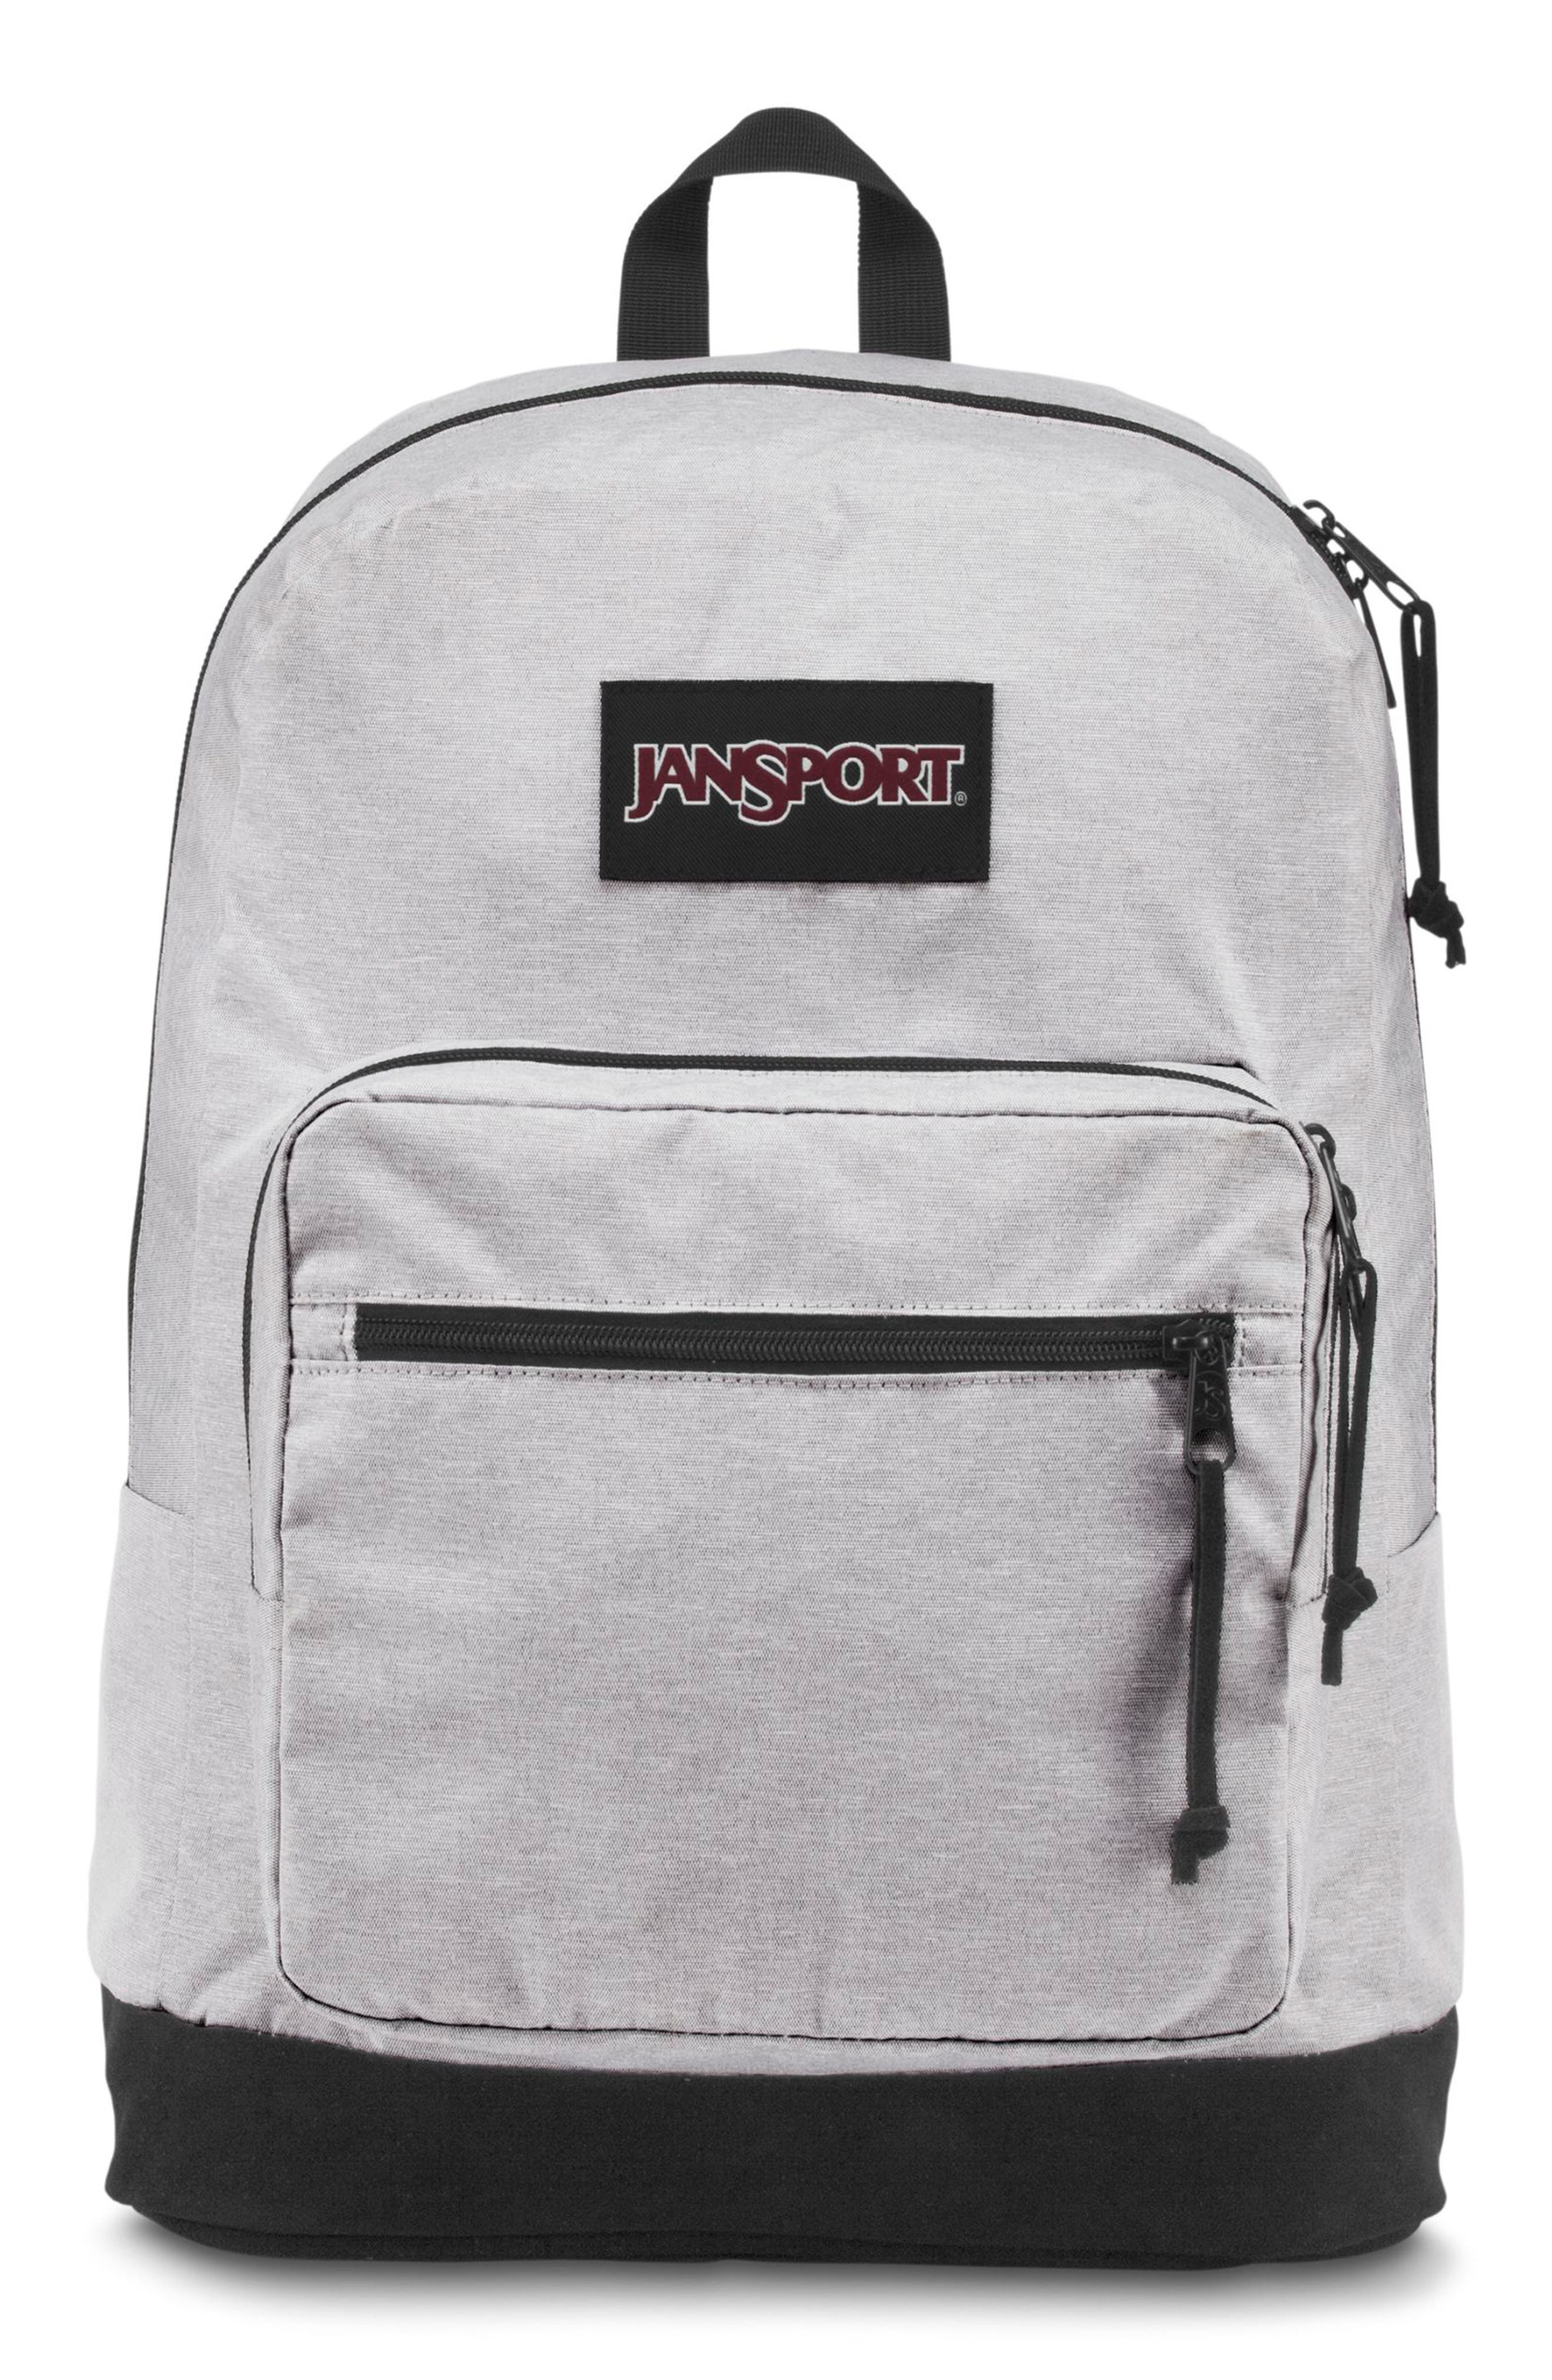 Alternate Image 1 Selected - Jansport 'Right Pack' Backpack